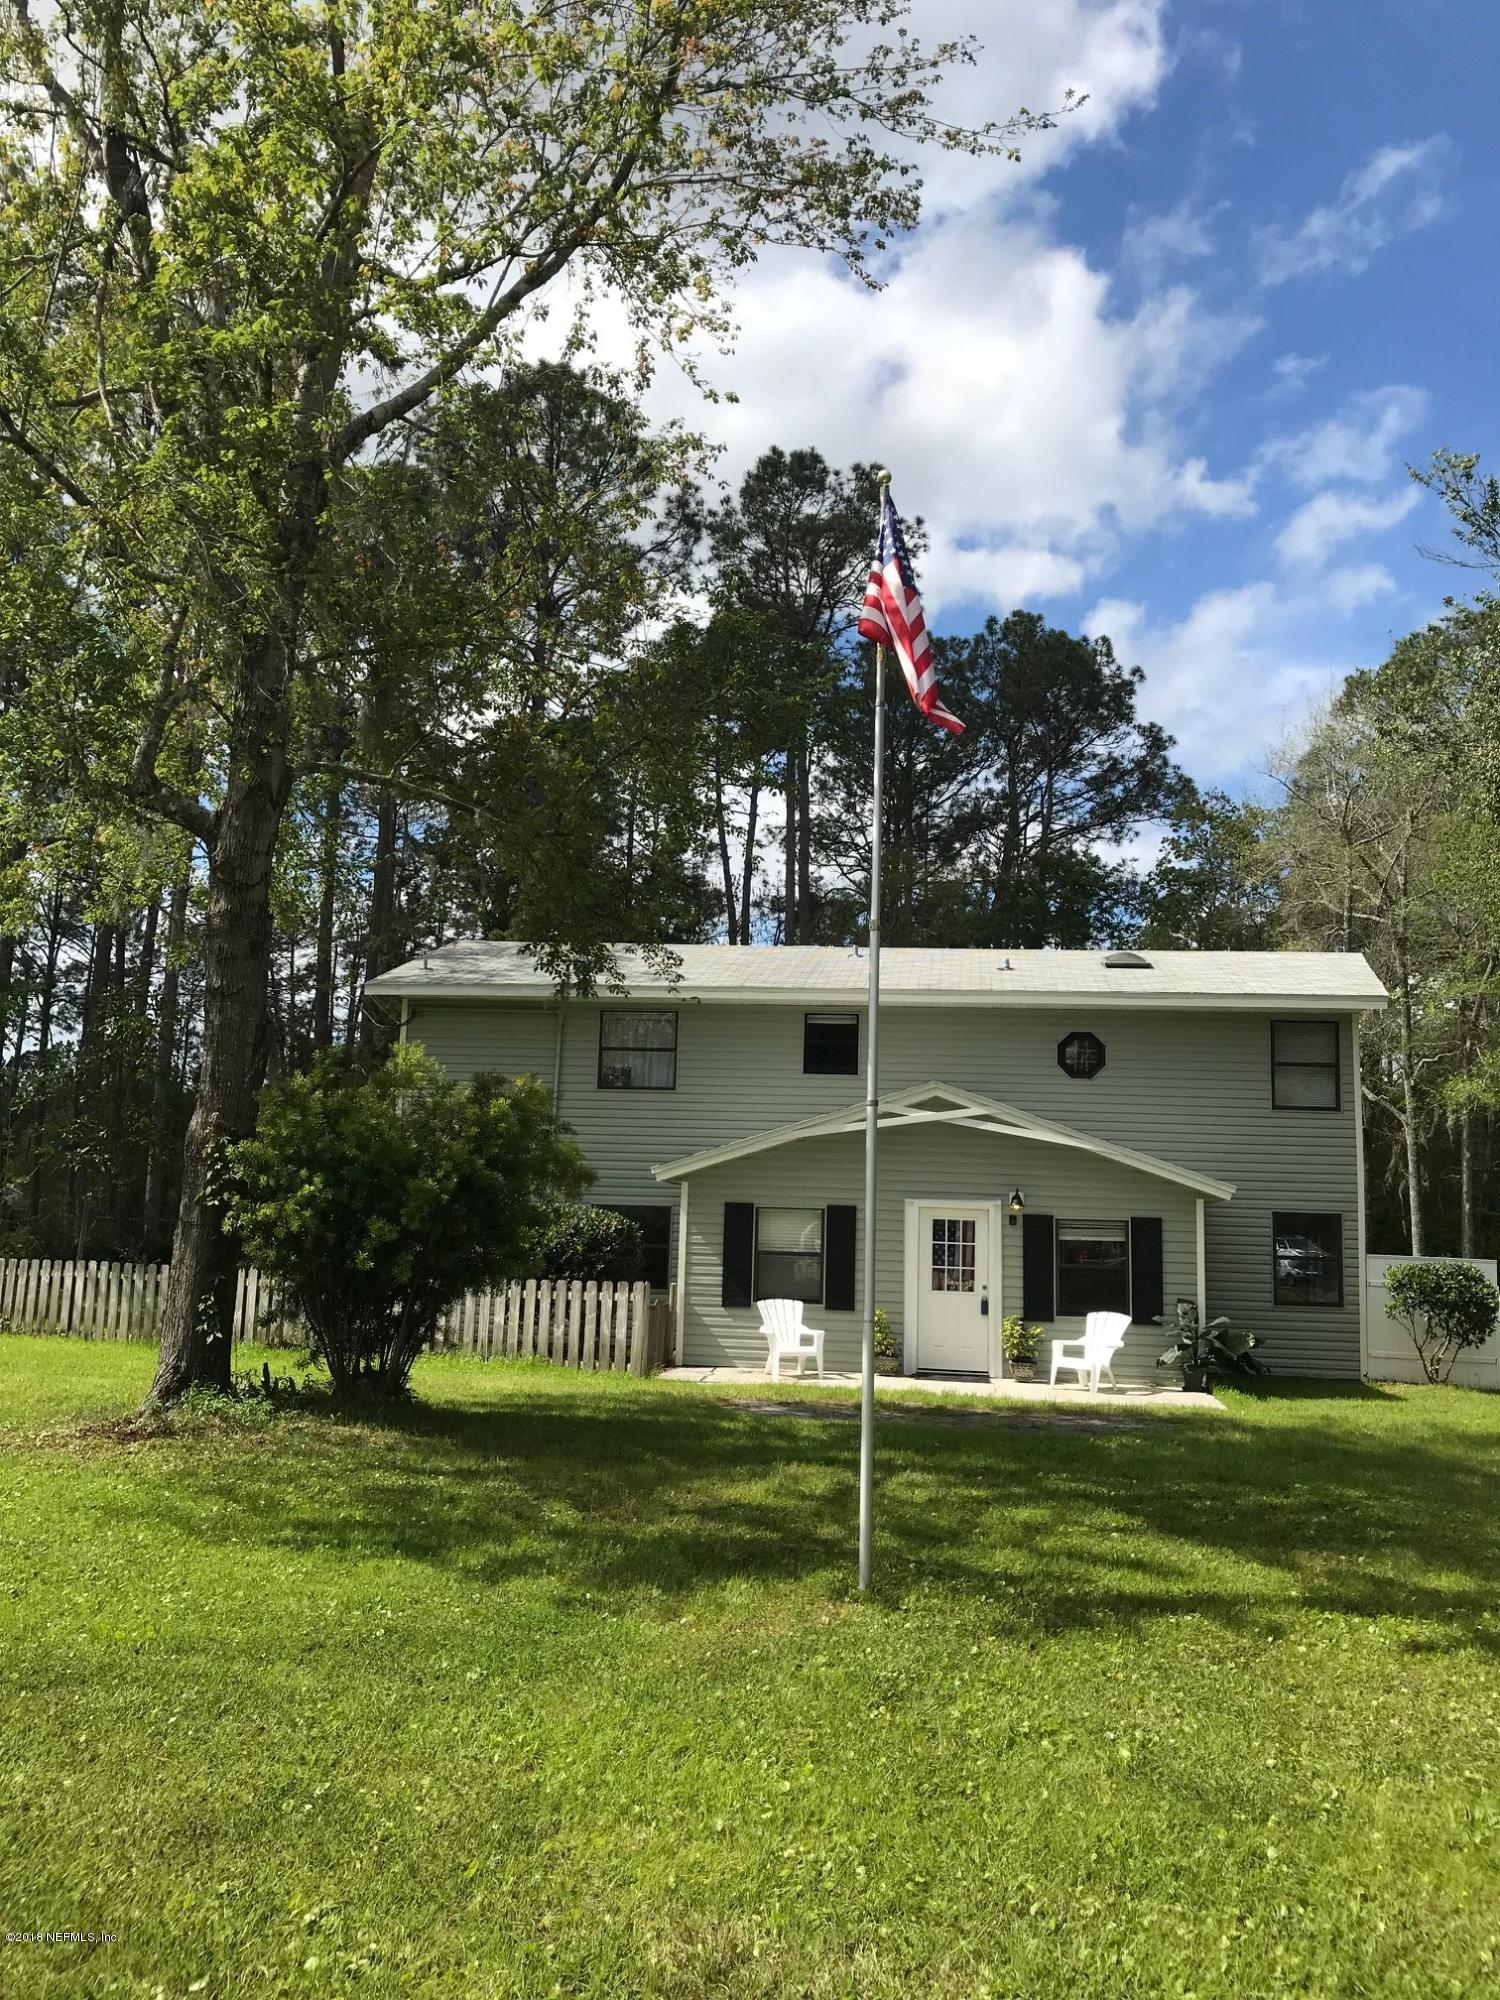 54029 LAWHON, CALLAHAN, FLORIDA 32011, 5 Bedrooms Bedrooms, ,2 BathroomsBathrooms,Residential - single family,For sale,LAWHON,927933